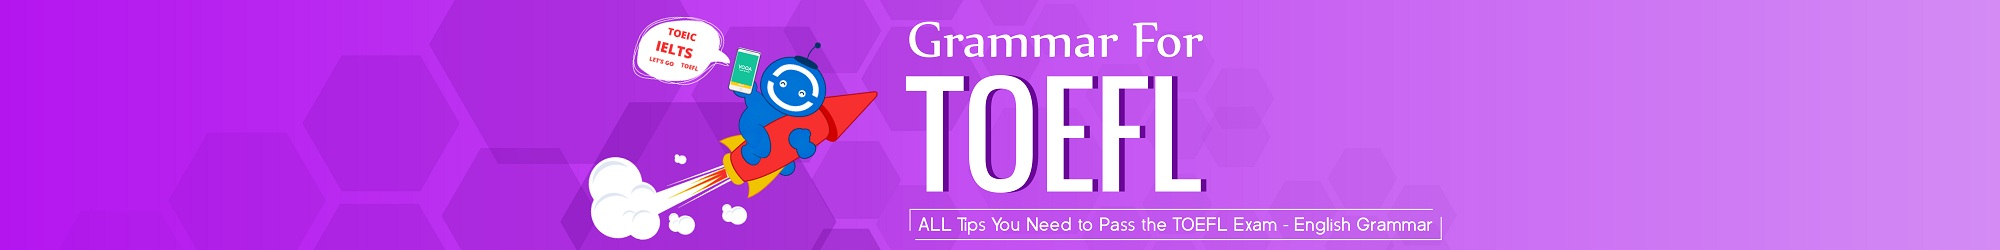 GRAMMAR FOR TOEFL TEST banner